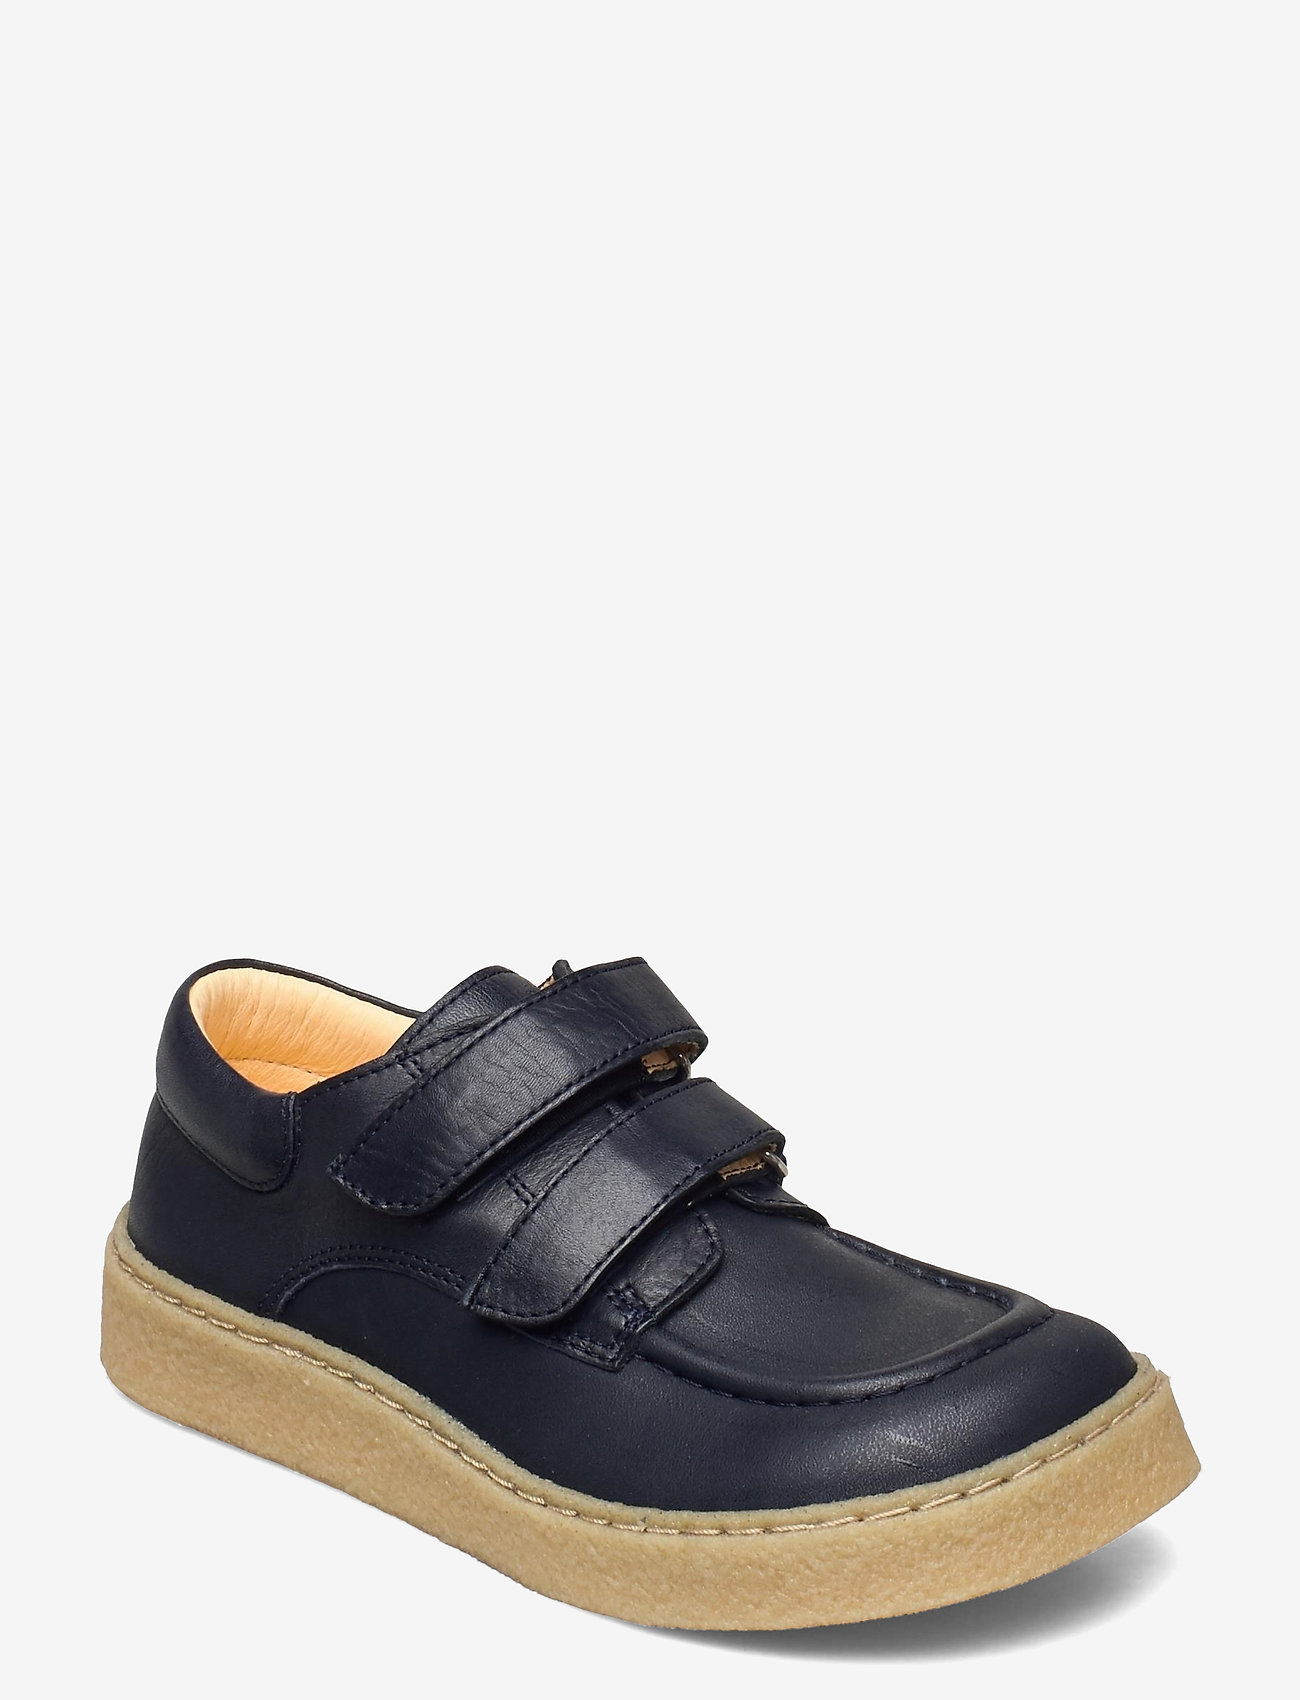 ANGULUS - Shoes - flat - with velcro - låga sneakers - 1546 navy - 0